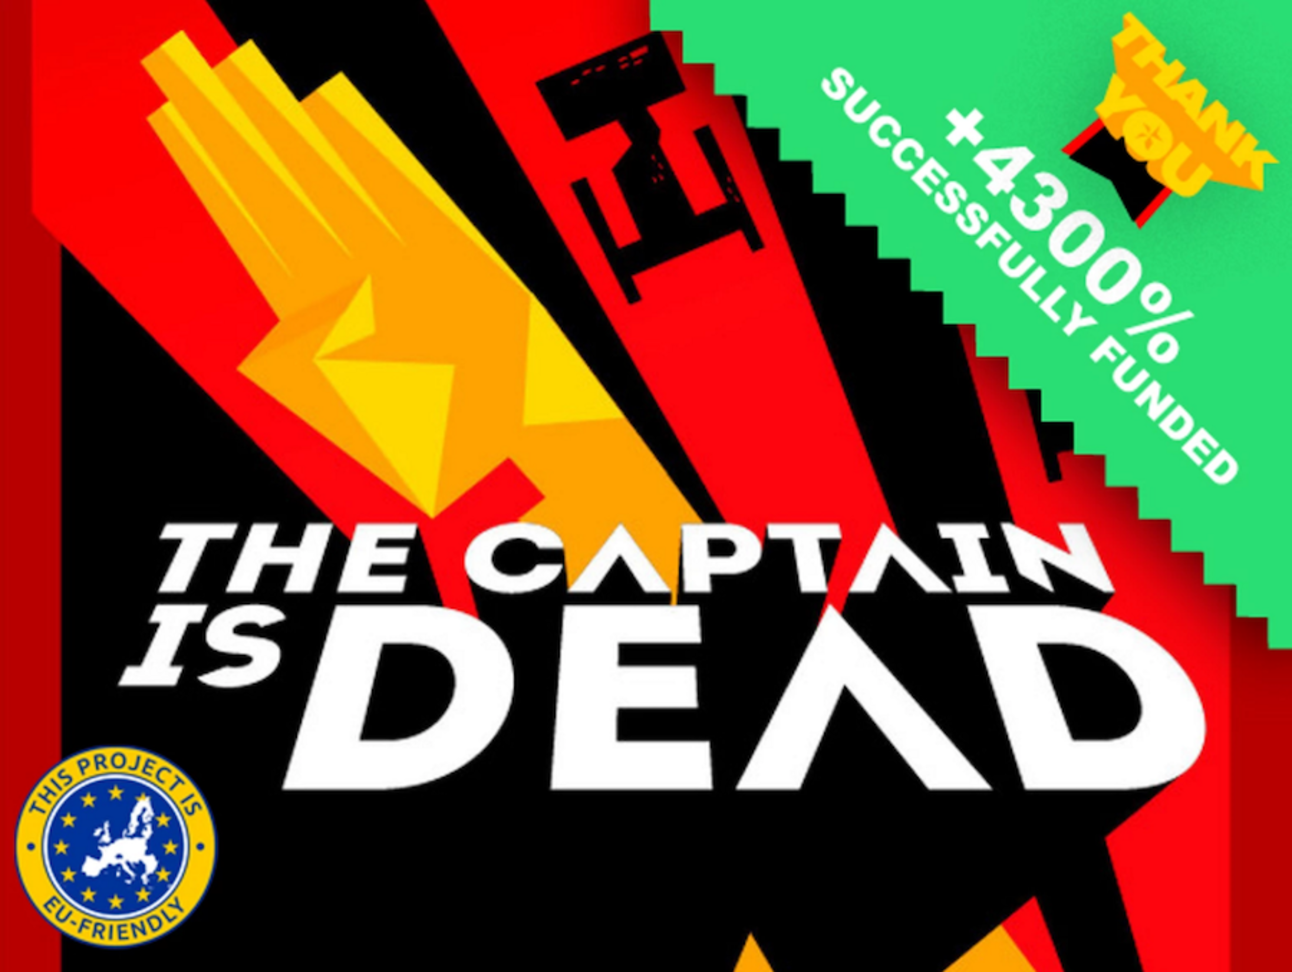 TheCaptainIsDead.png